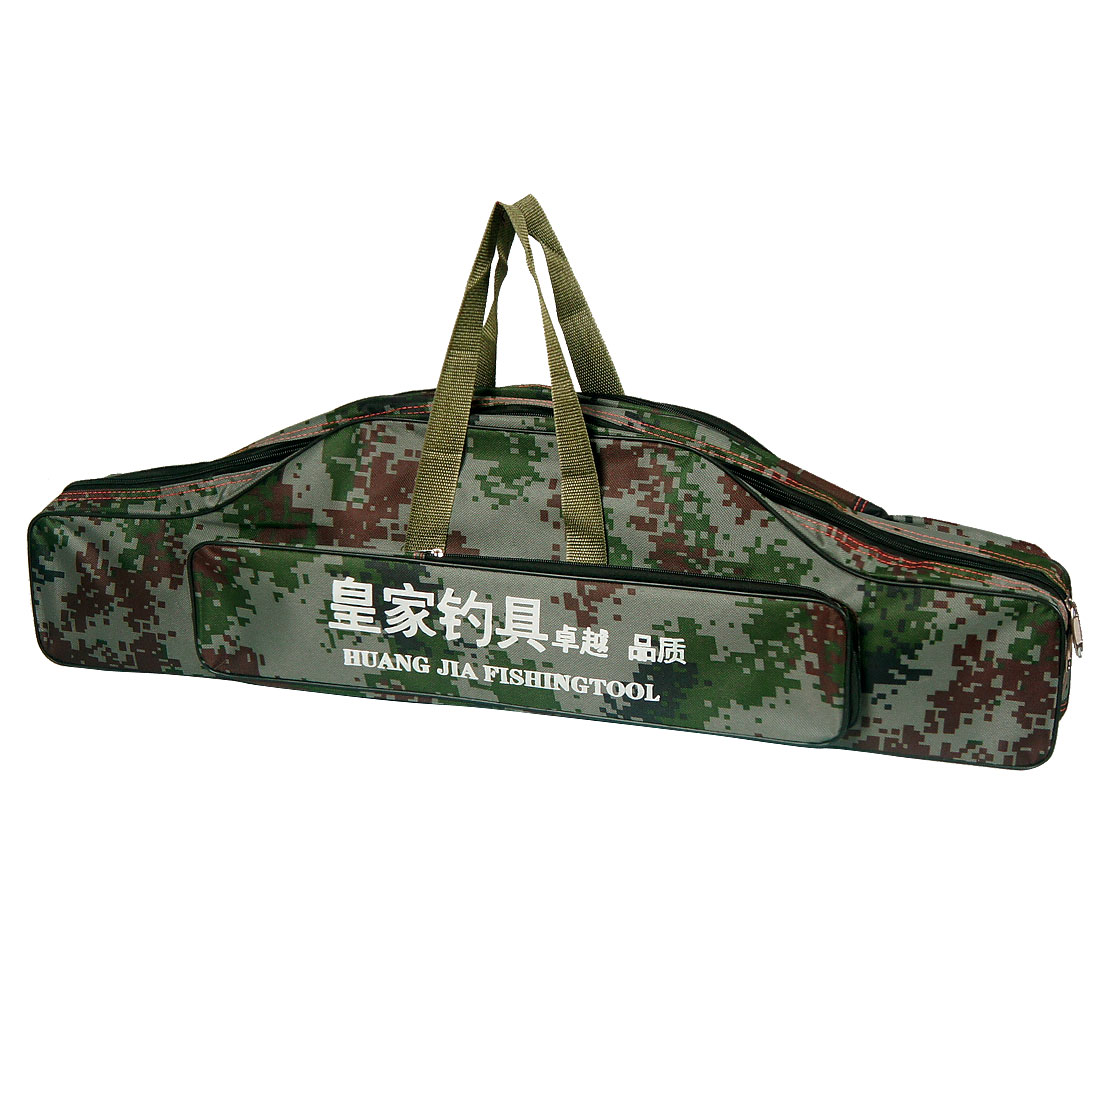 80cm Long Camouflage Pattern 2 Compartments Zippered Fishing Pole Carrying Bag